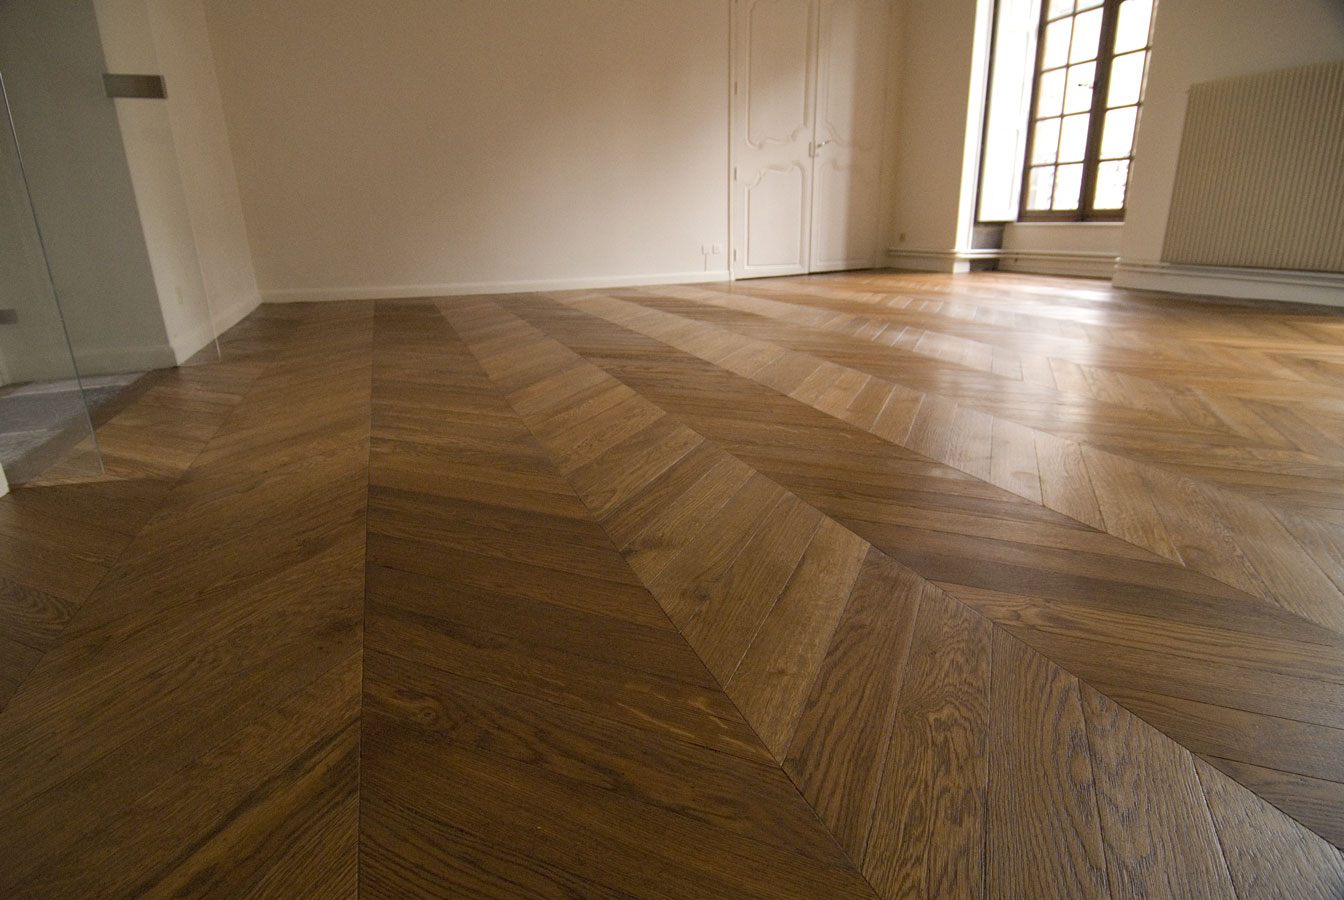 atelier des granges french parquet parquet chevron in a beautiful old apartment 485. Black Bedroom Furniture Sets. Home Design Ideas